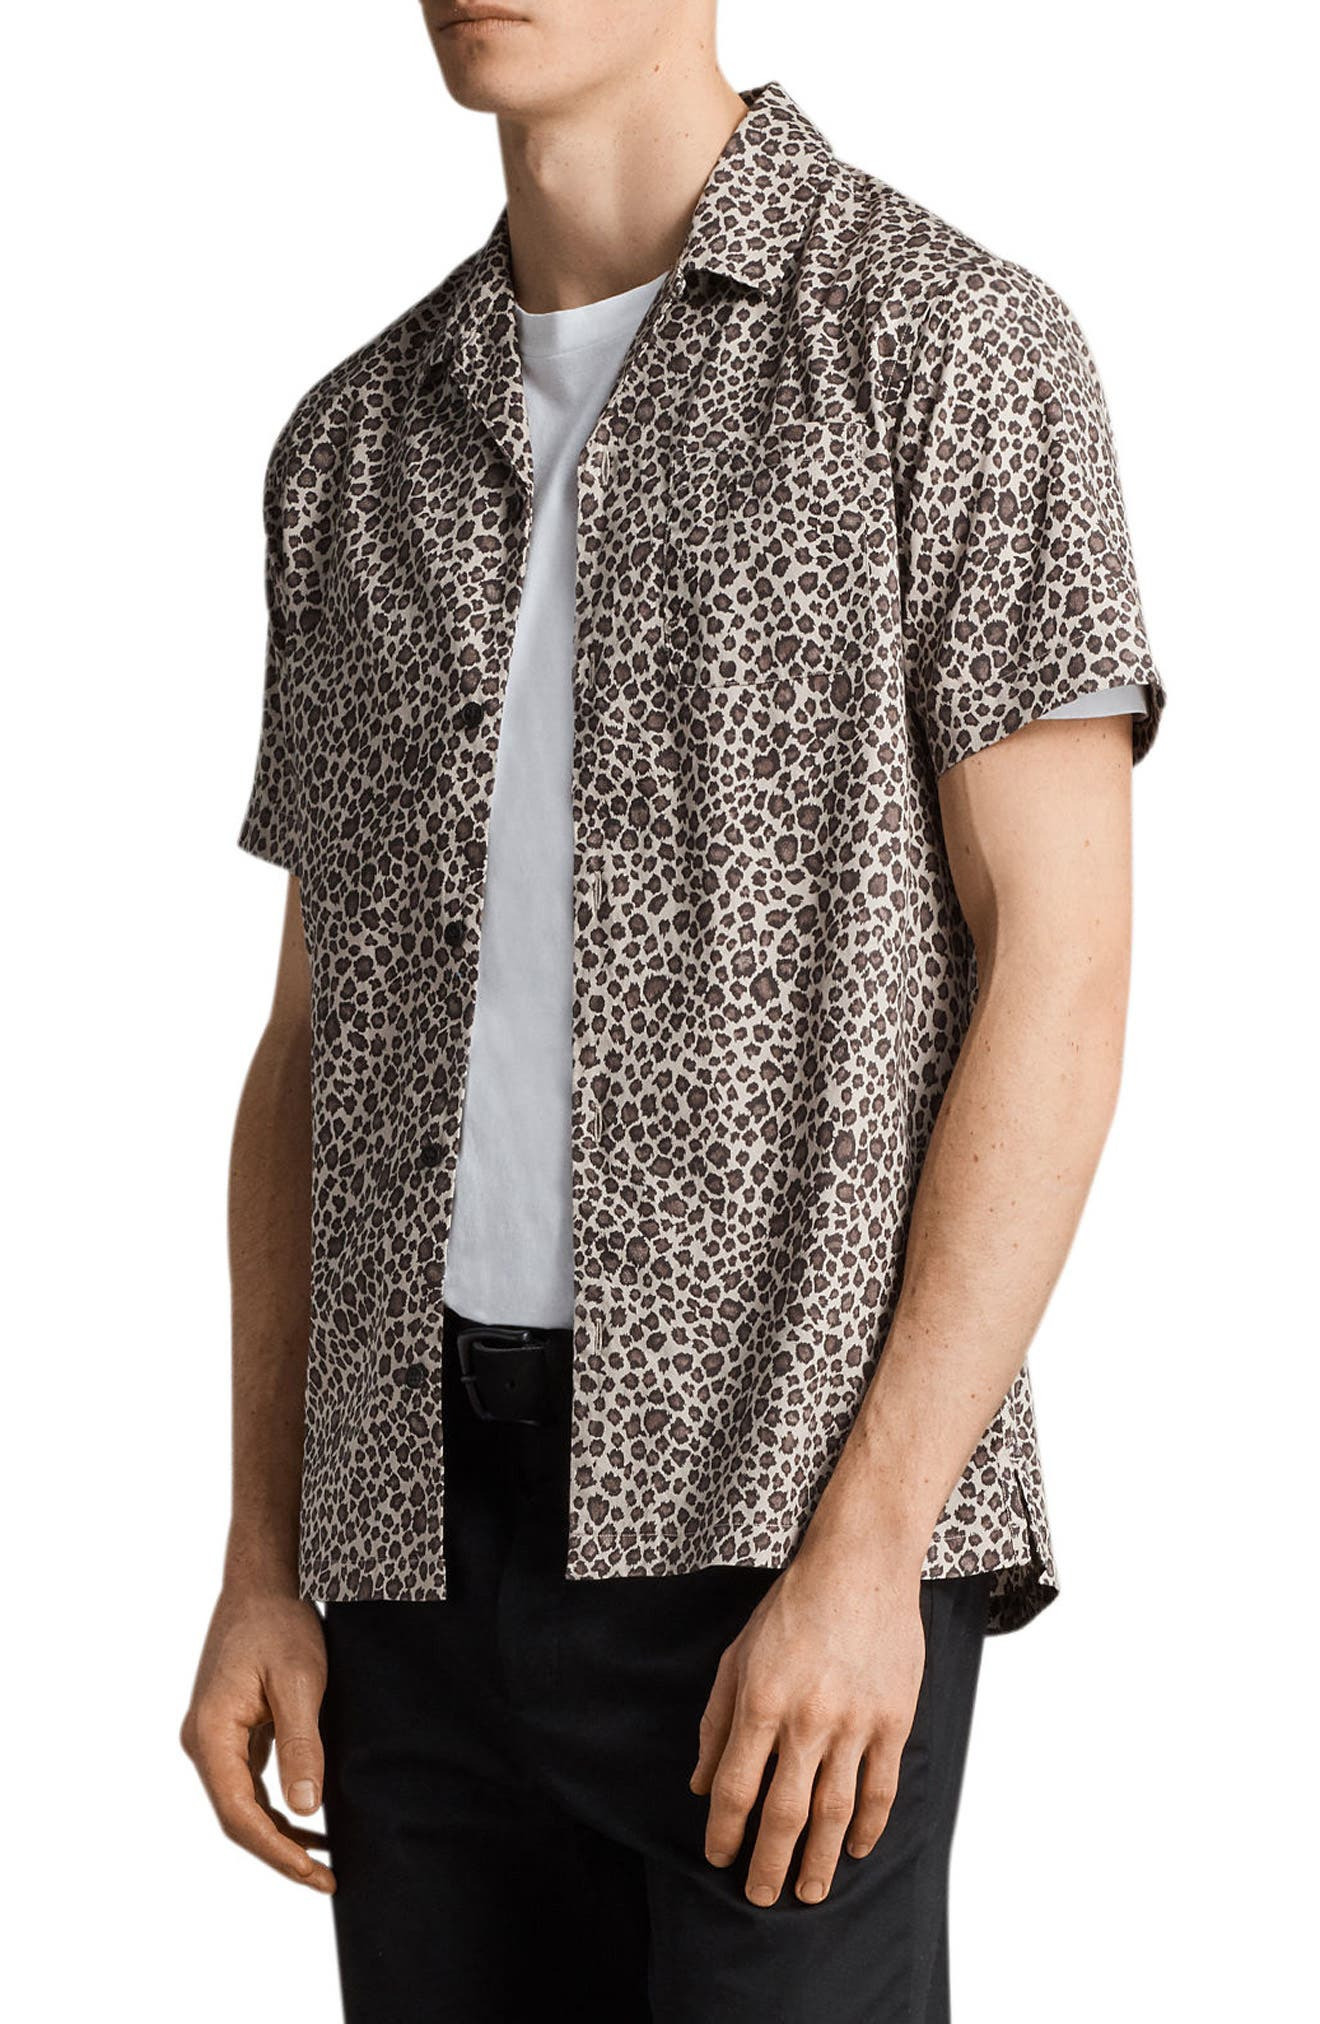 Apex Leopard Print Short Sleeve Sport Shirt,                             Alternate thumbnail 3, color,